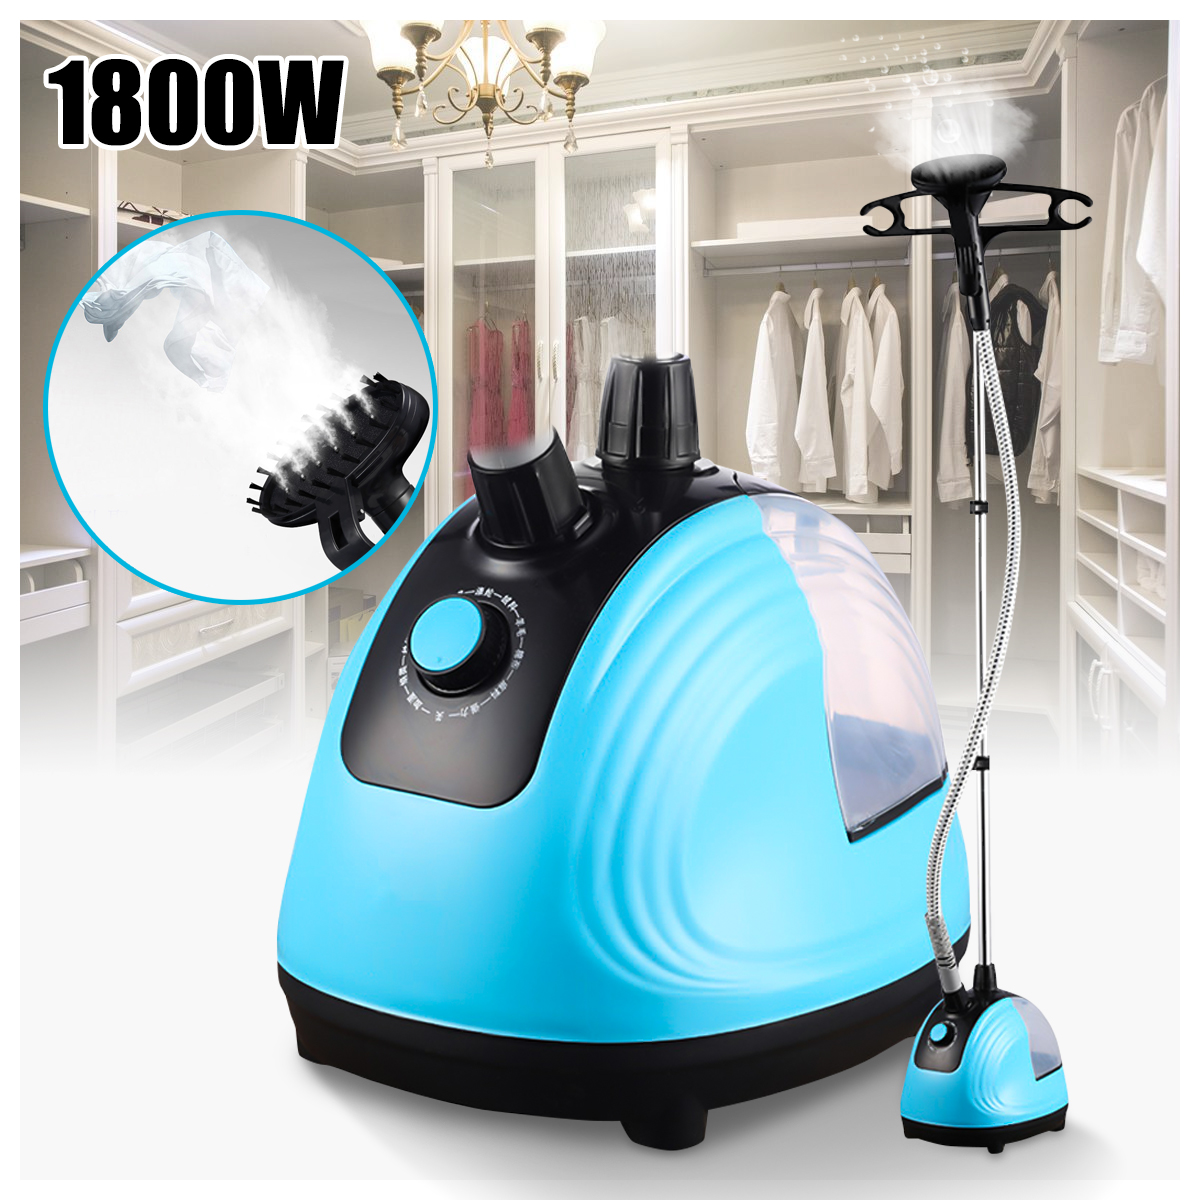 220V 1800W Portable Handheld Garment Steamer Adjustable Electric Irons Clothes Ironer Steamer Garment Hanging Ironing Machine household garment steamer 1 6l handheld clothes steamer vertical steam ironing machine ls 708d